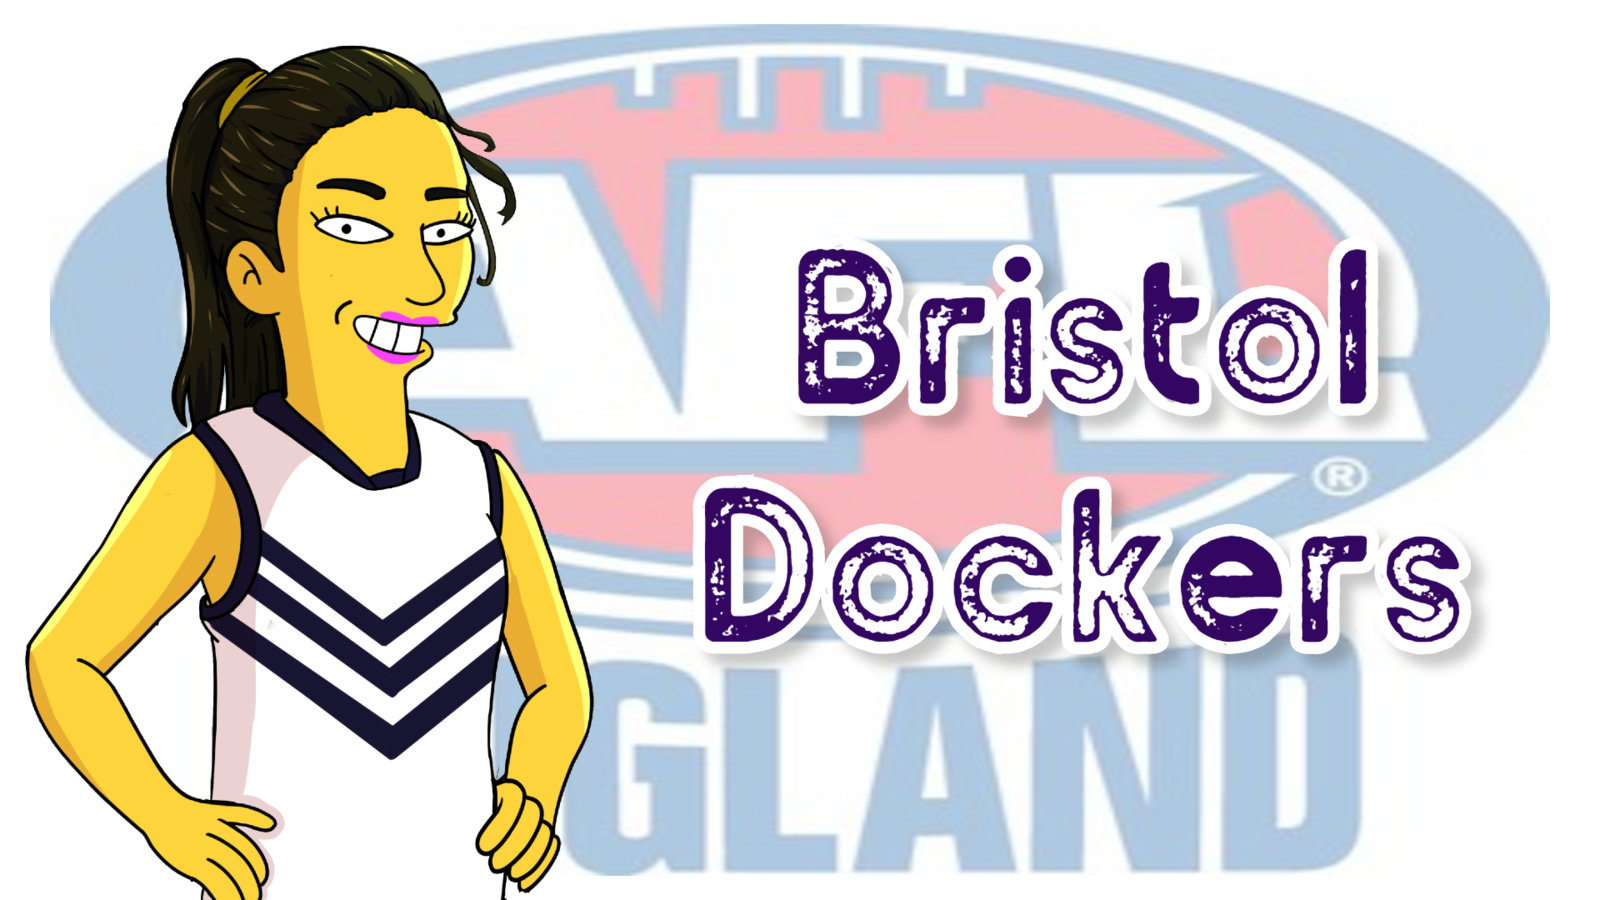 AFL Europe 2020 - Bristol Dockers.jpg